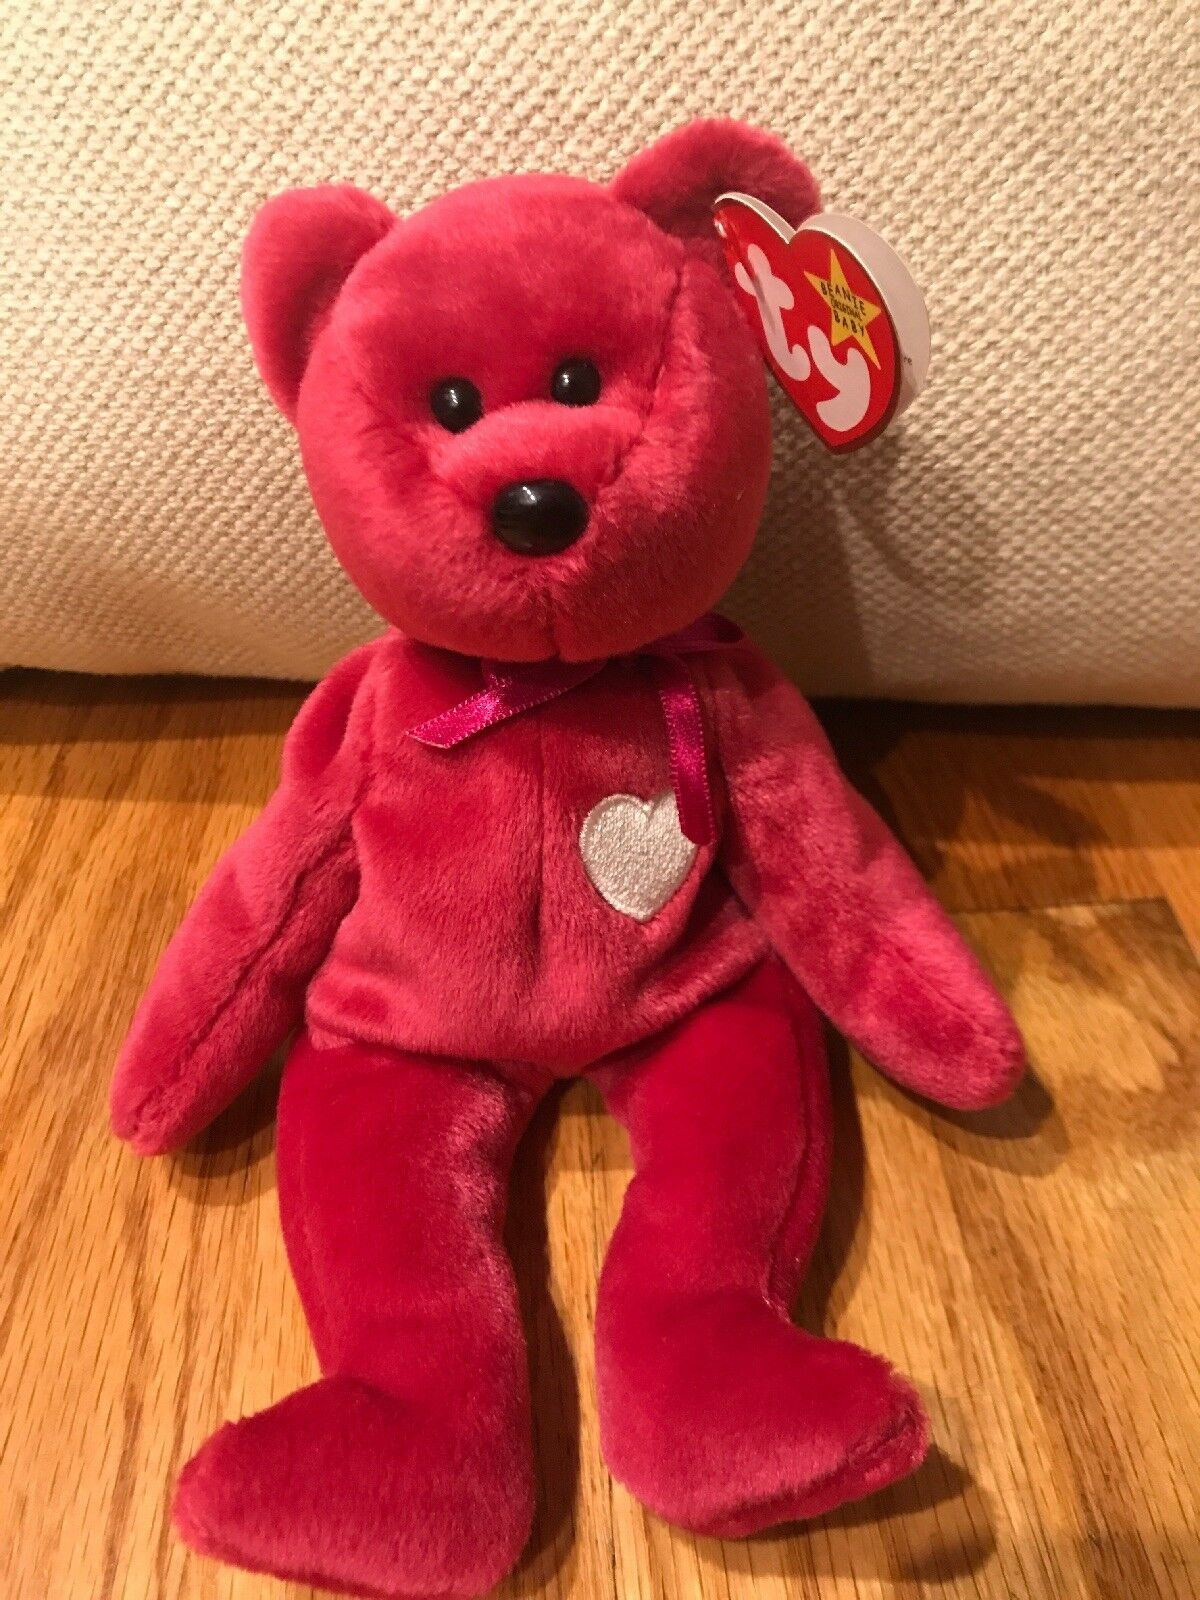 """046b7ddb9a8 Valentina Retired Retired Valentina Ty Beanie Baby With Errors """"Rare"""" 0d28ad"""